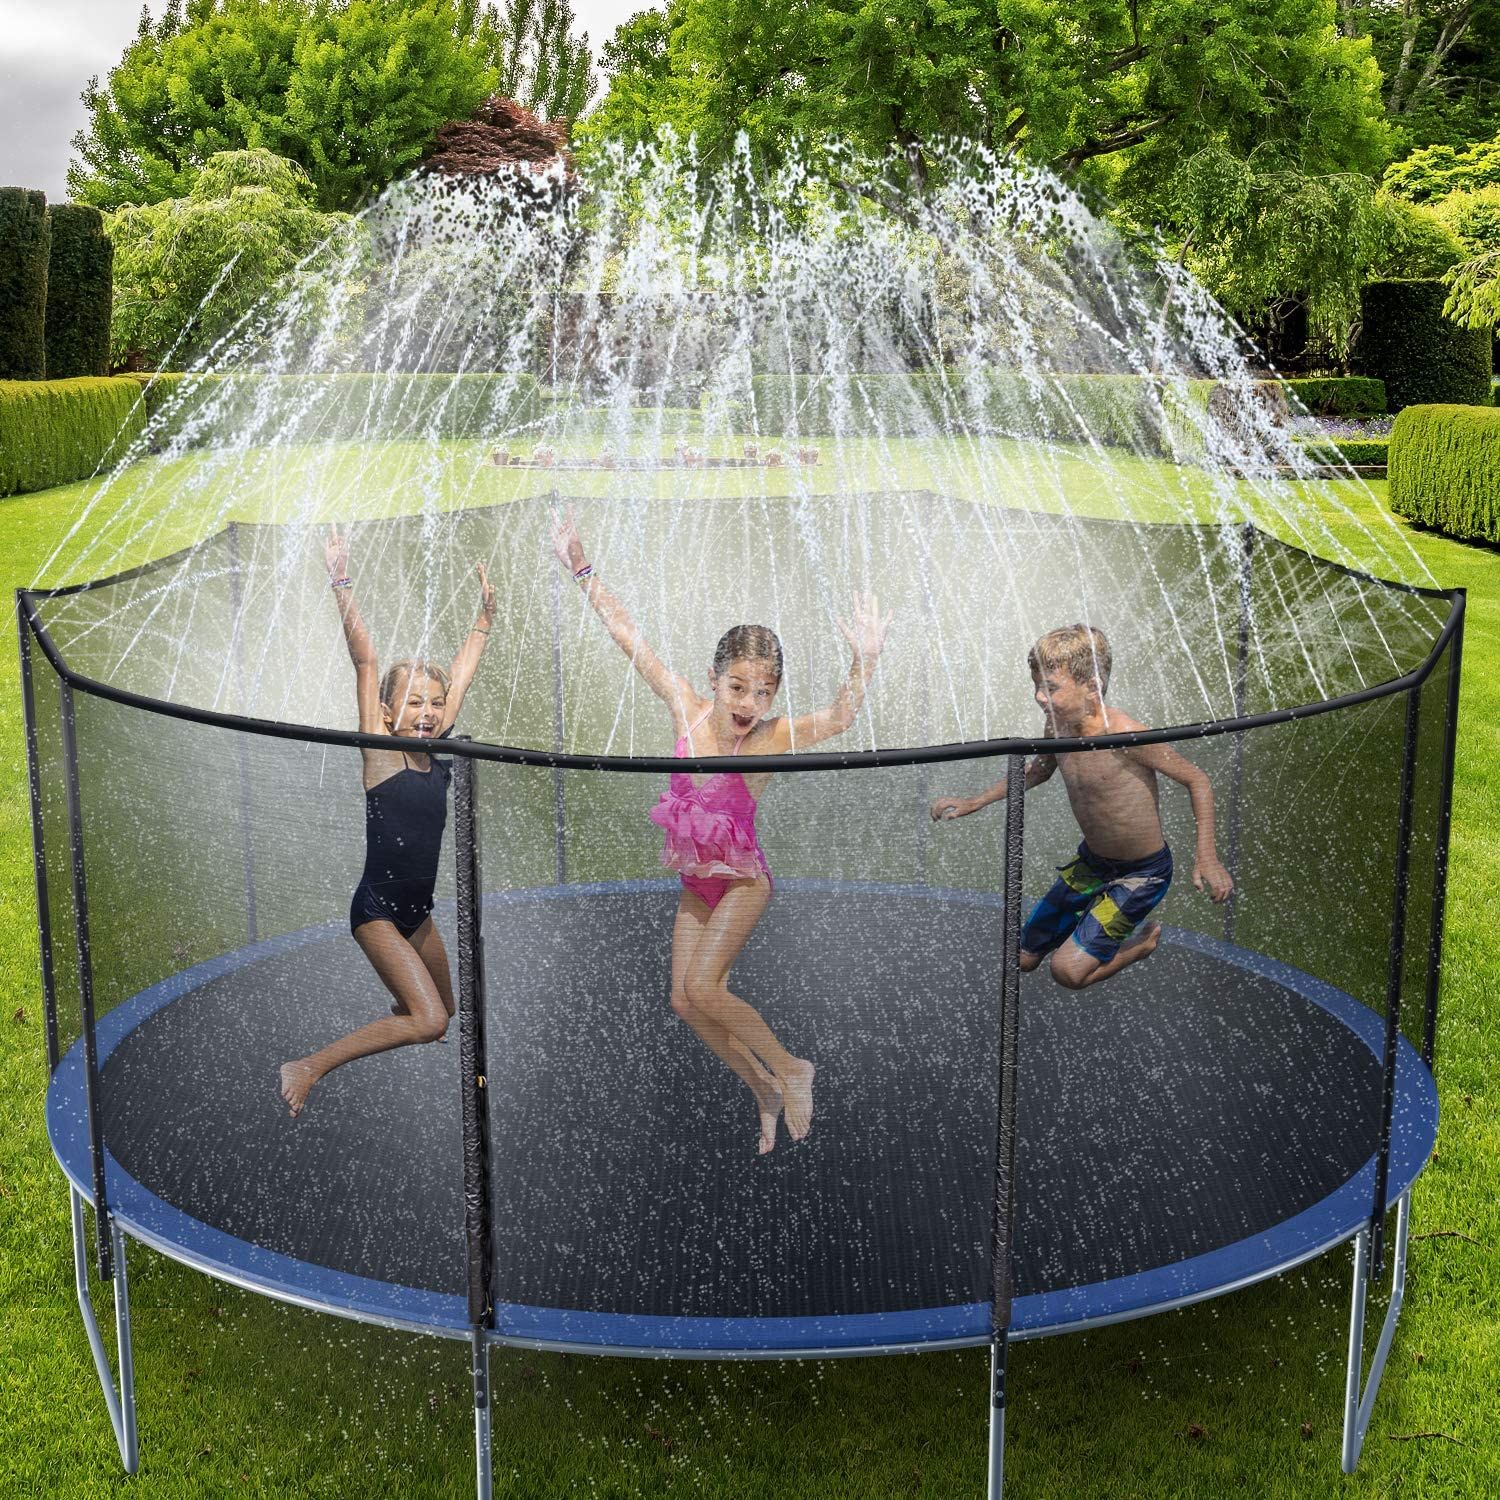 Amazon.com: Ohuhu Trampoline Sprinklers for Kids 49FT, Outdoor Water Play  Sprinklers for Kids Fun Summer Water Toys, Water Games Yard Toys Sprinklers  Backyard Sprayer Water Park for Boys Girls: Toys & Games